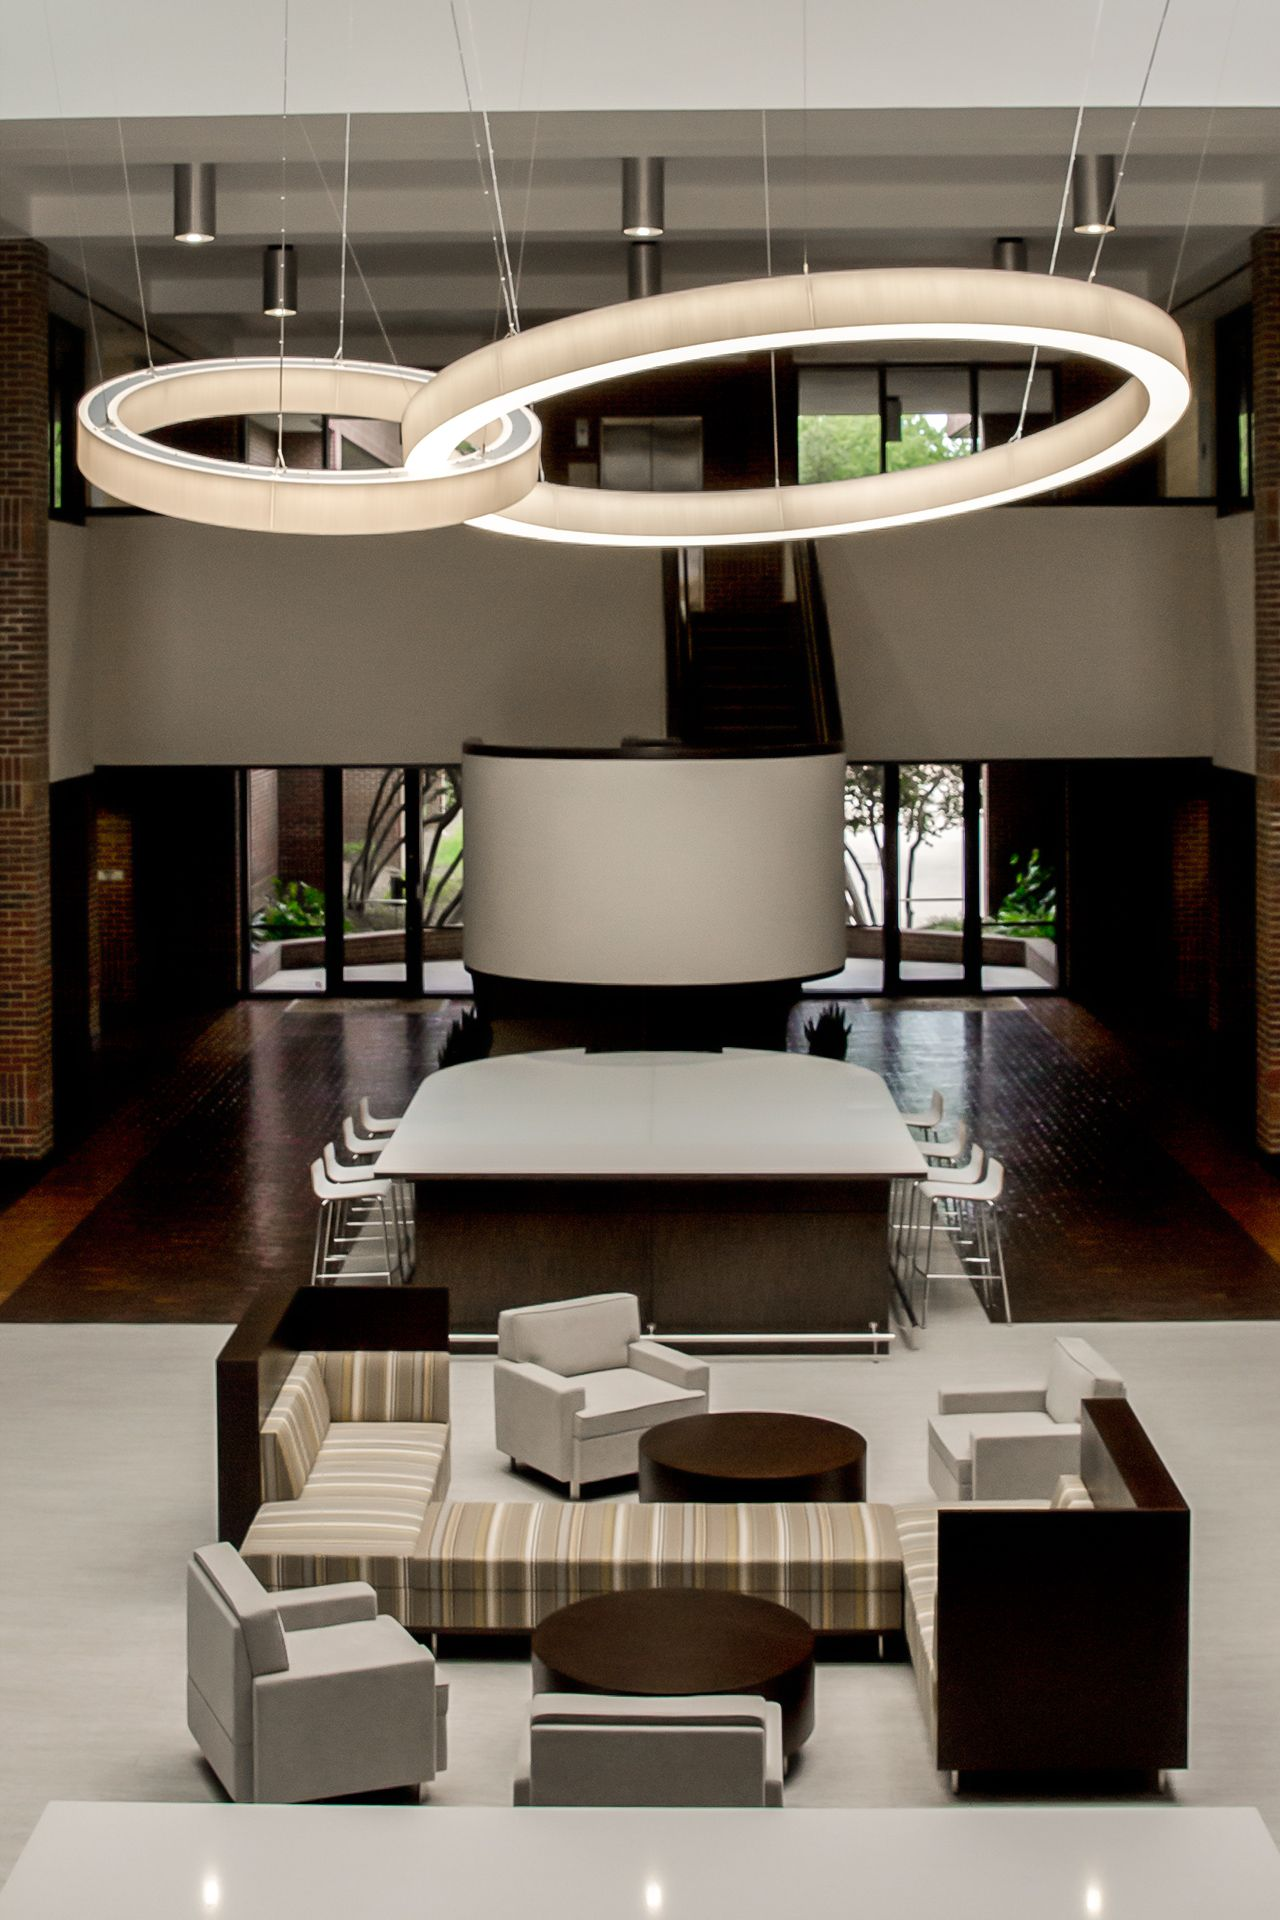 Connected By Lightart Is A System Of Modular Lighting Shapes 1 000 Colors Available Solid State Led System Made With 3f With Images Healthcare Design Home Home Decor